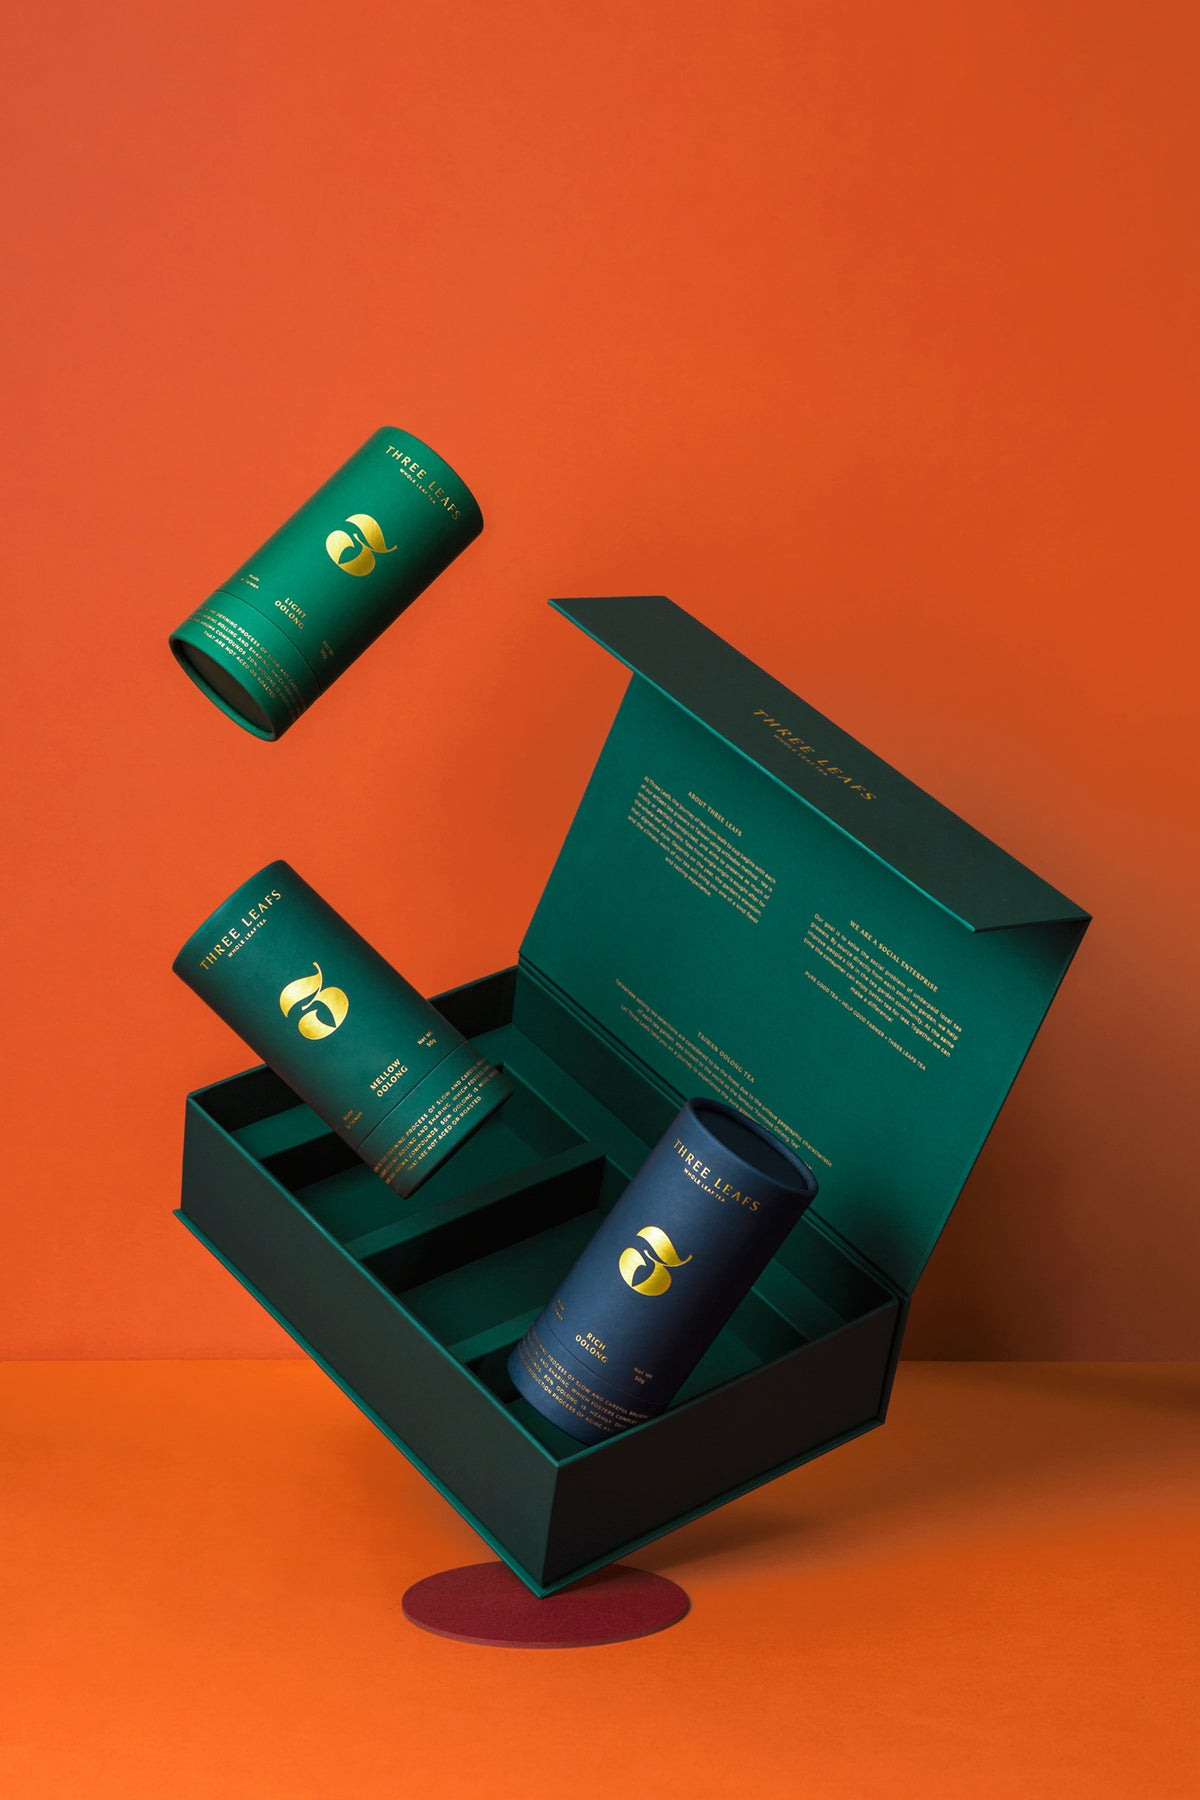 Premium Taiwan Oolong Tea Gift Set